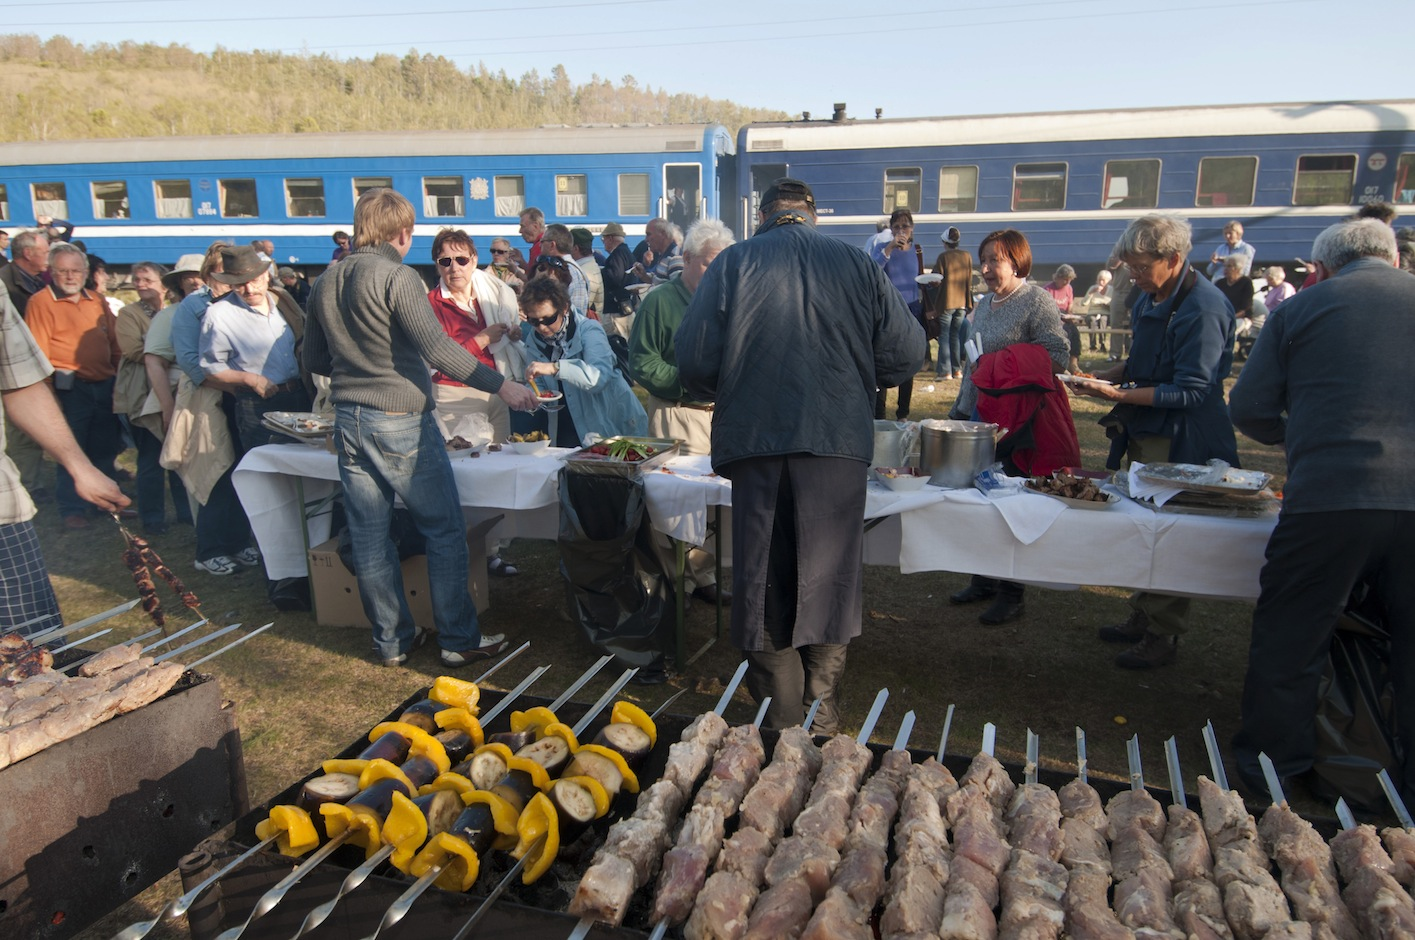 Picknick at Lake Baikal